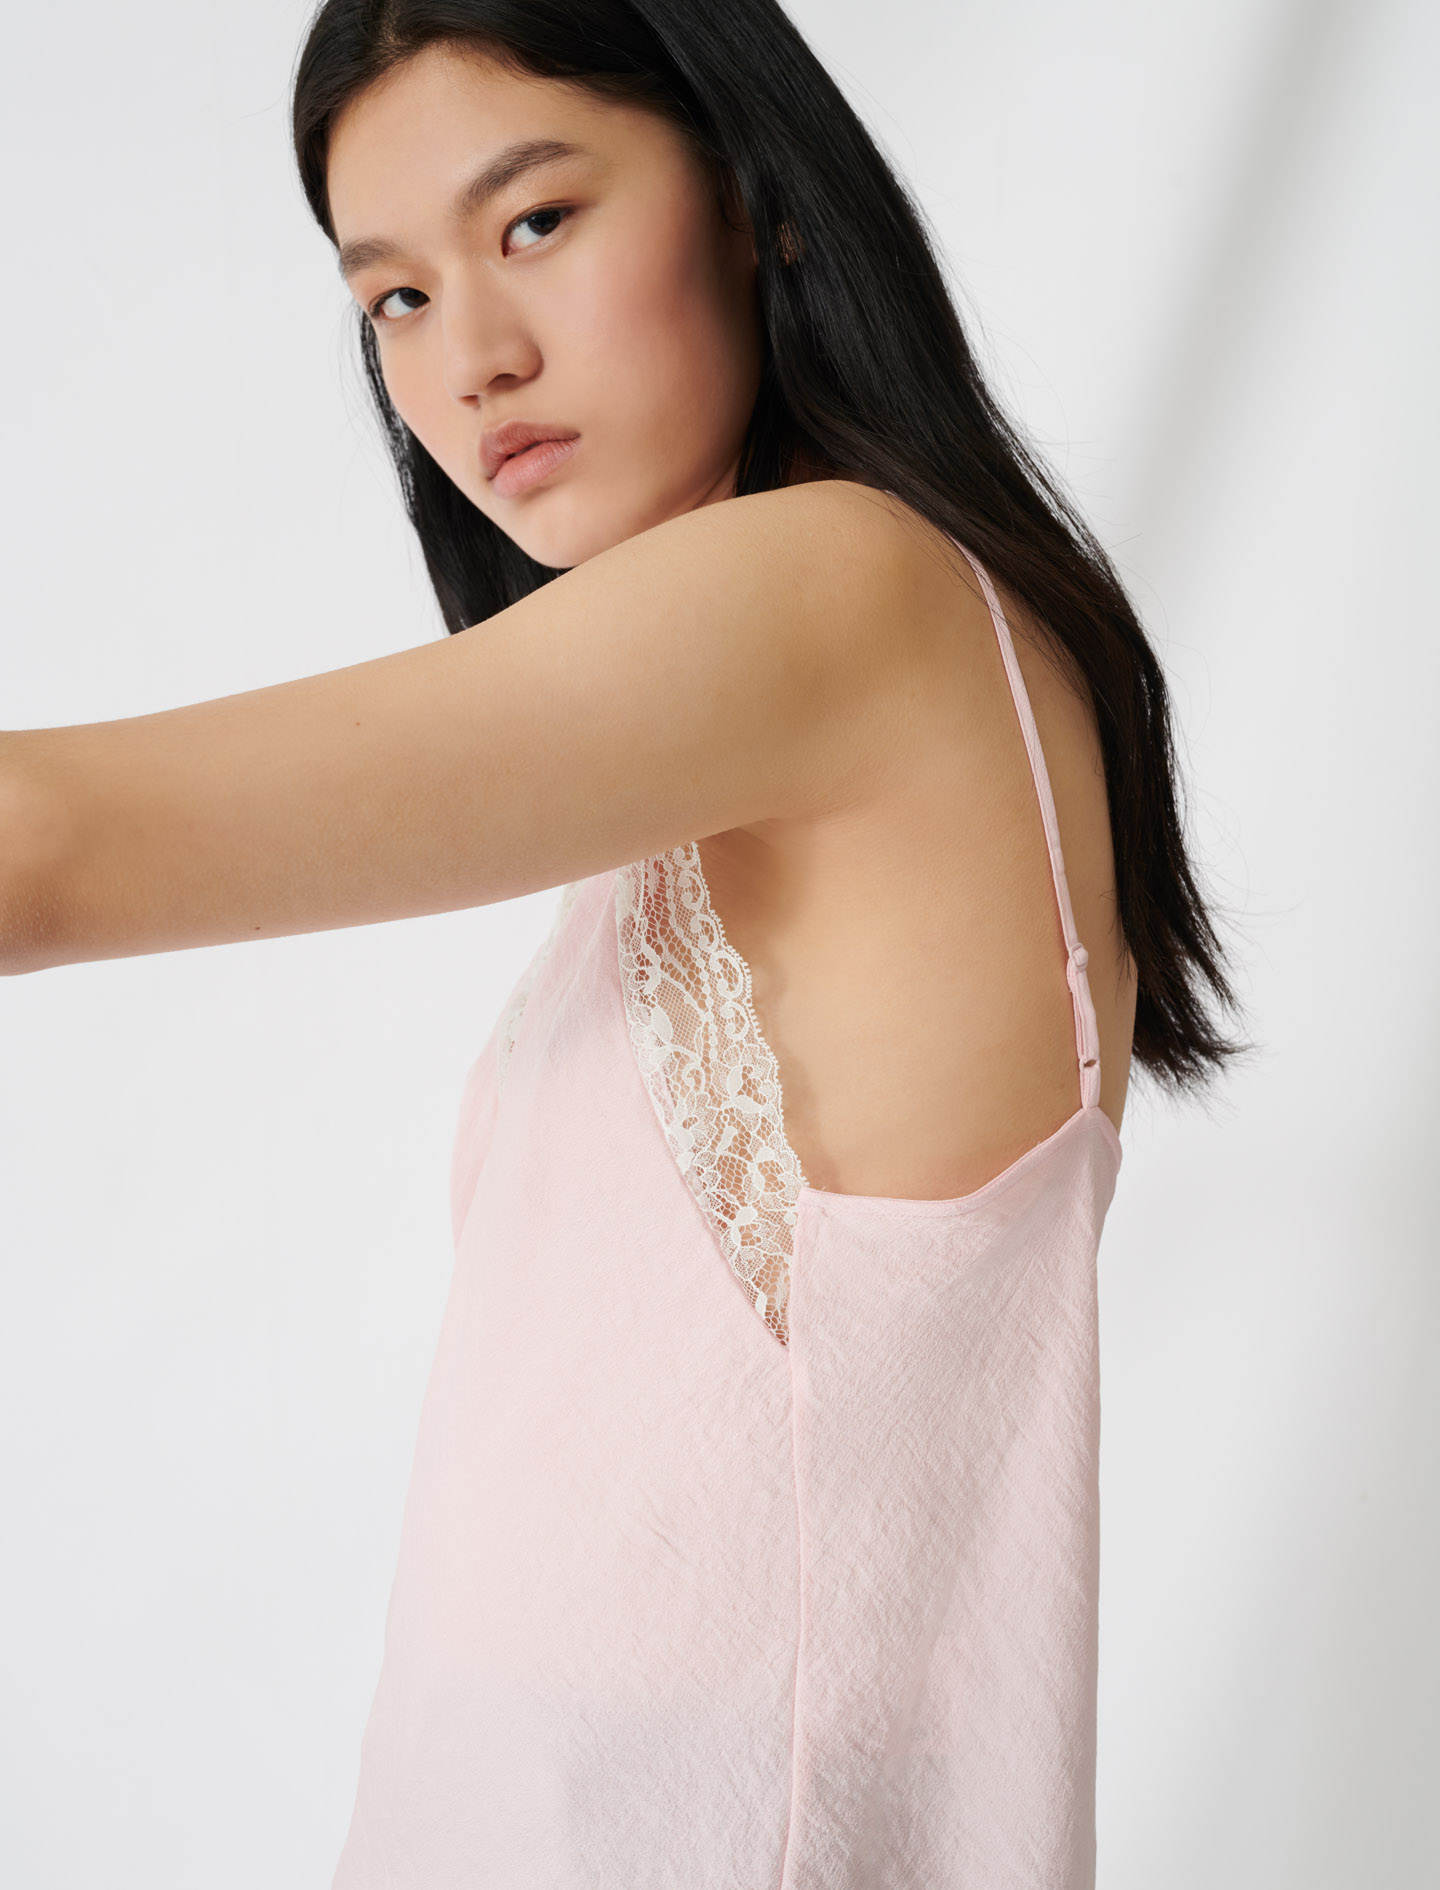 Pink top with thin straps and lace trim - Pink